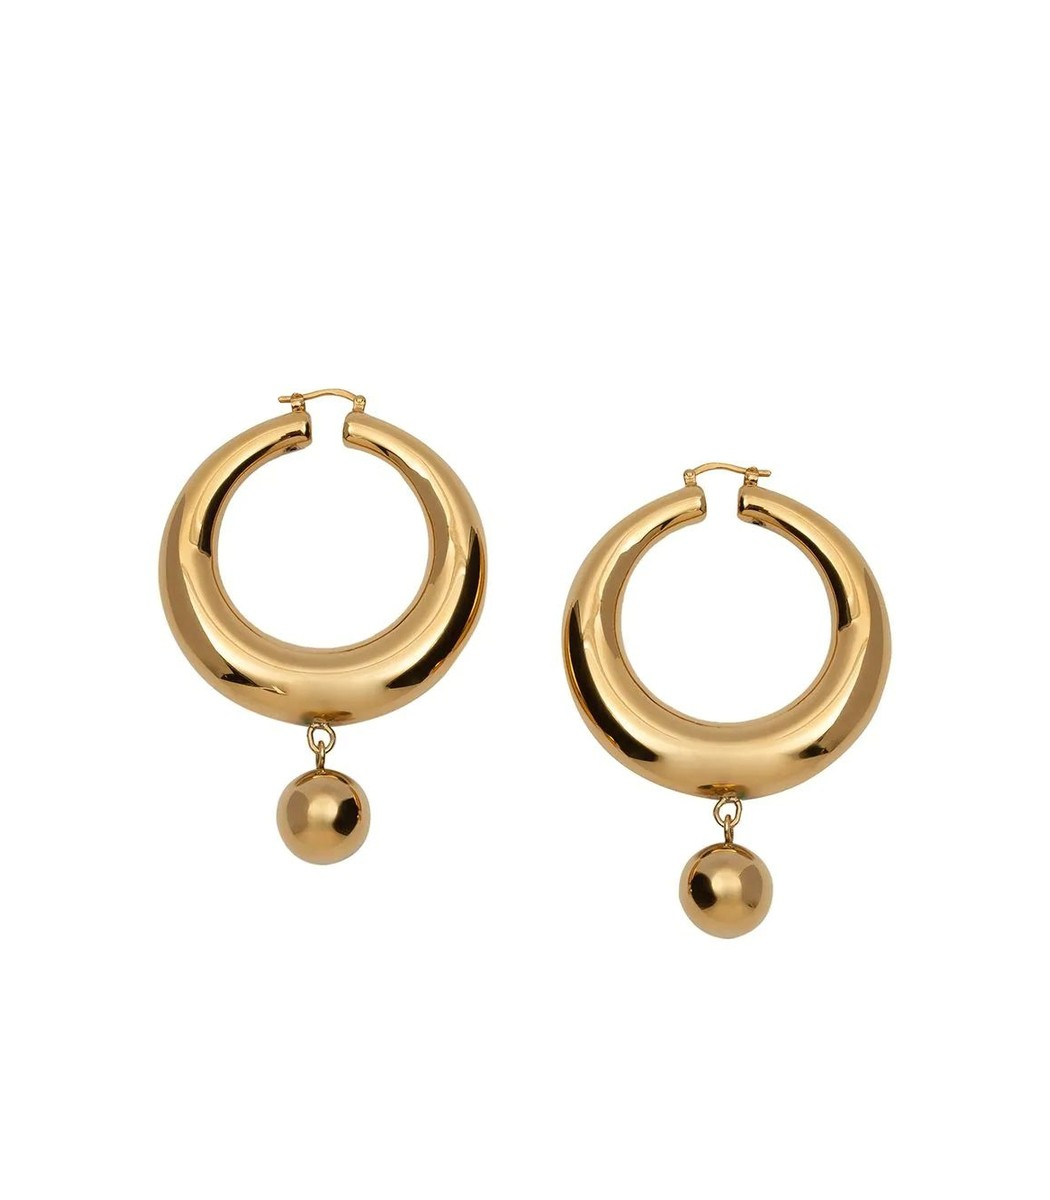 Jw Anderson Gold-tone Eco Brass Hoop Earrings